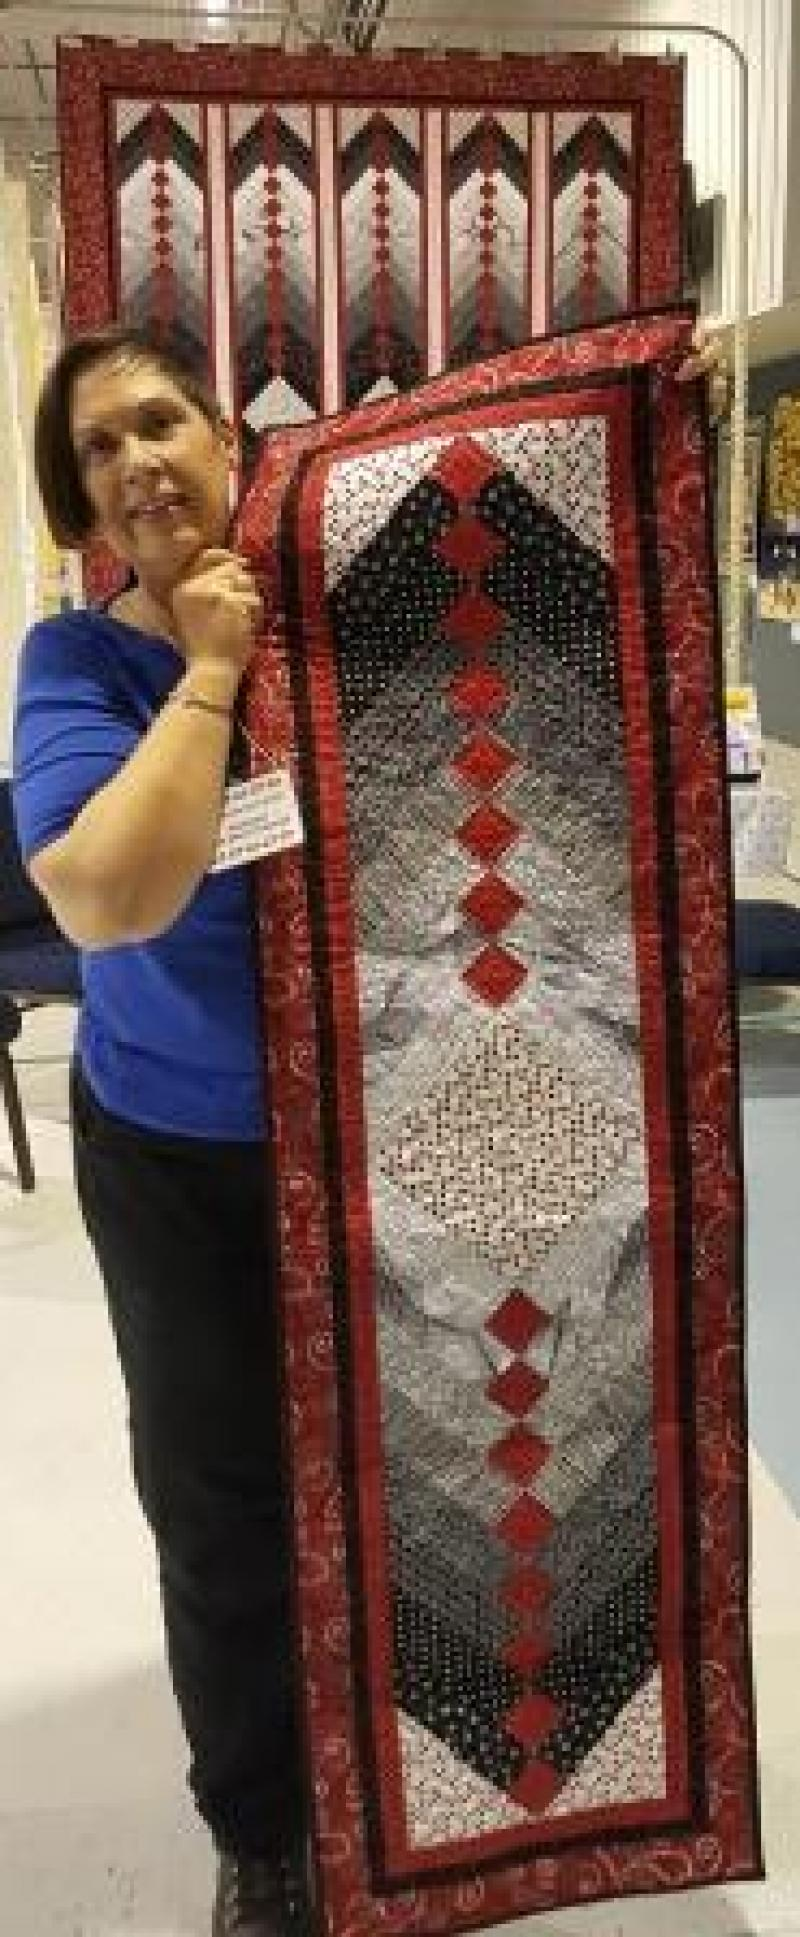 Cindy S won the table runner that coordinates with this year's Serendipity Quilt